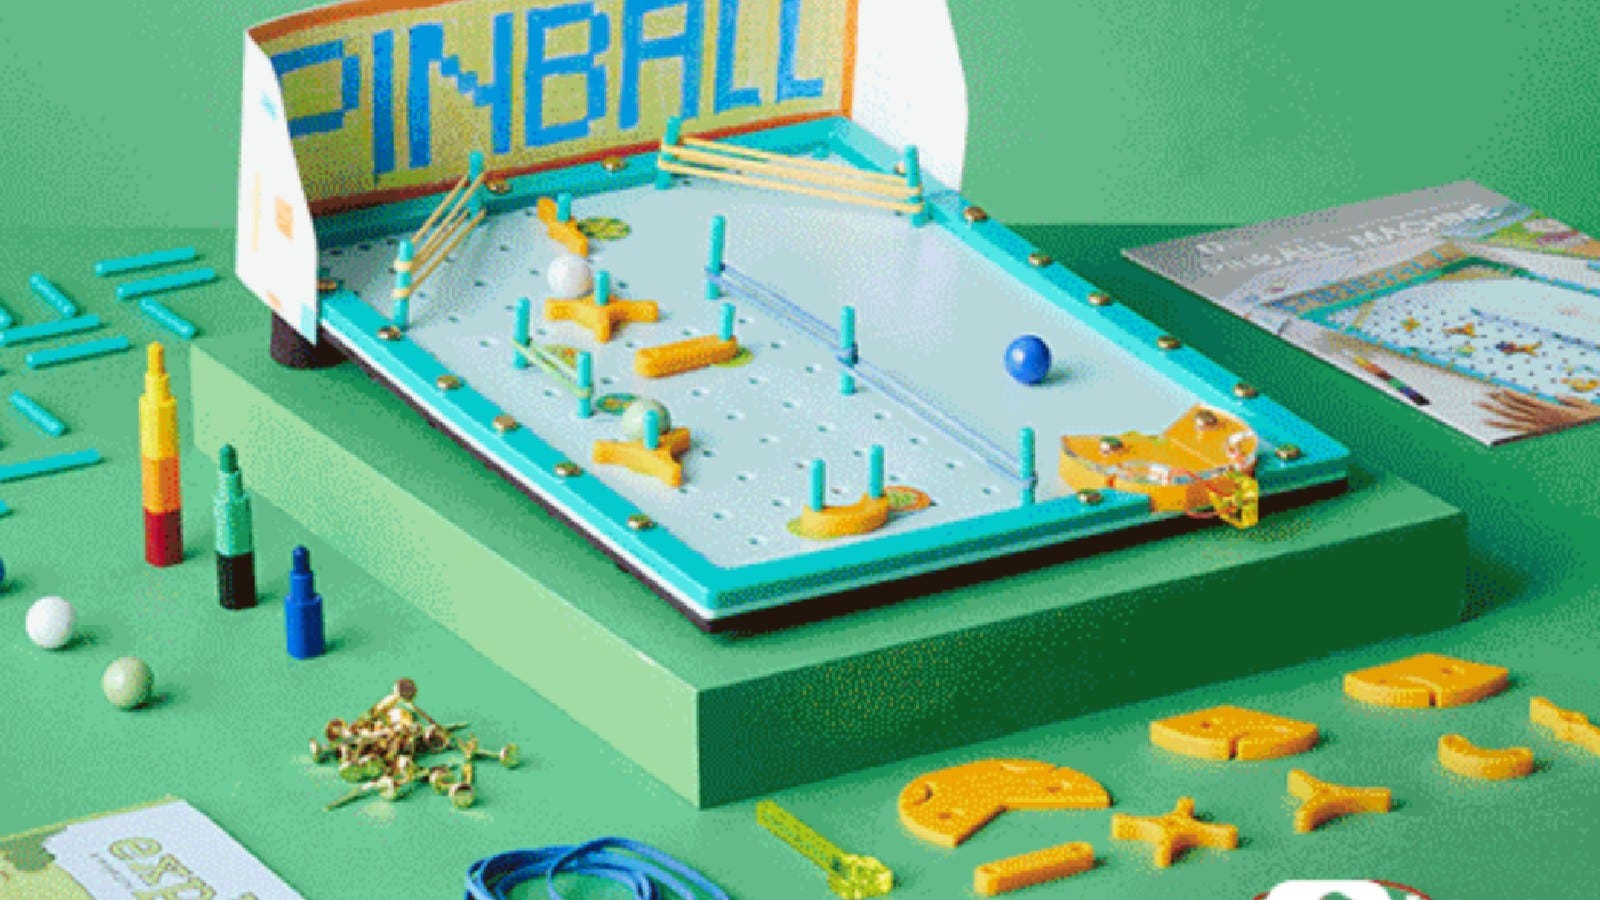 A Pinball machine made out of building blocks.